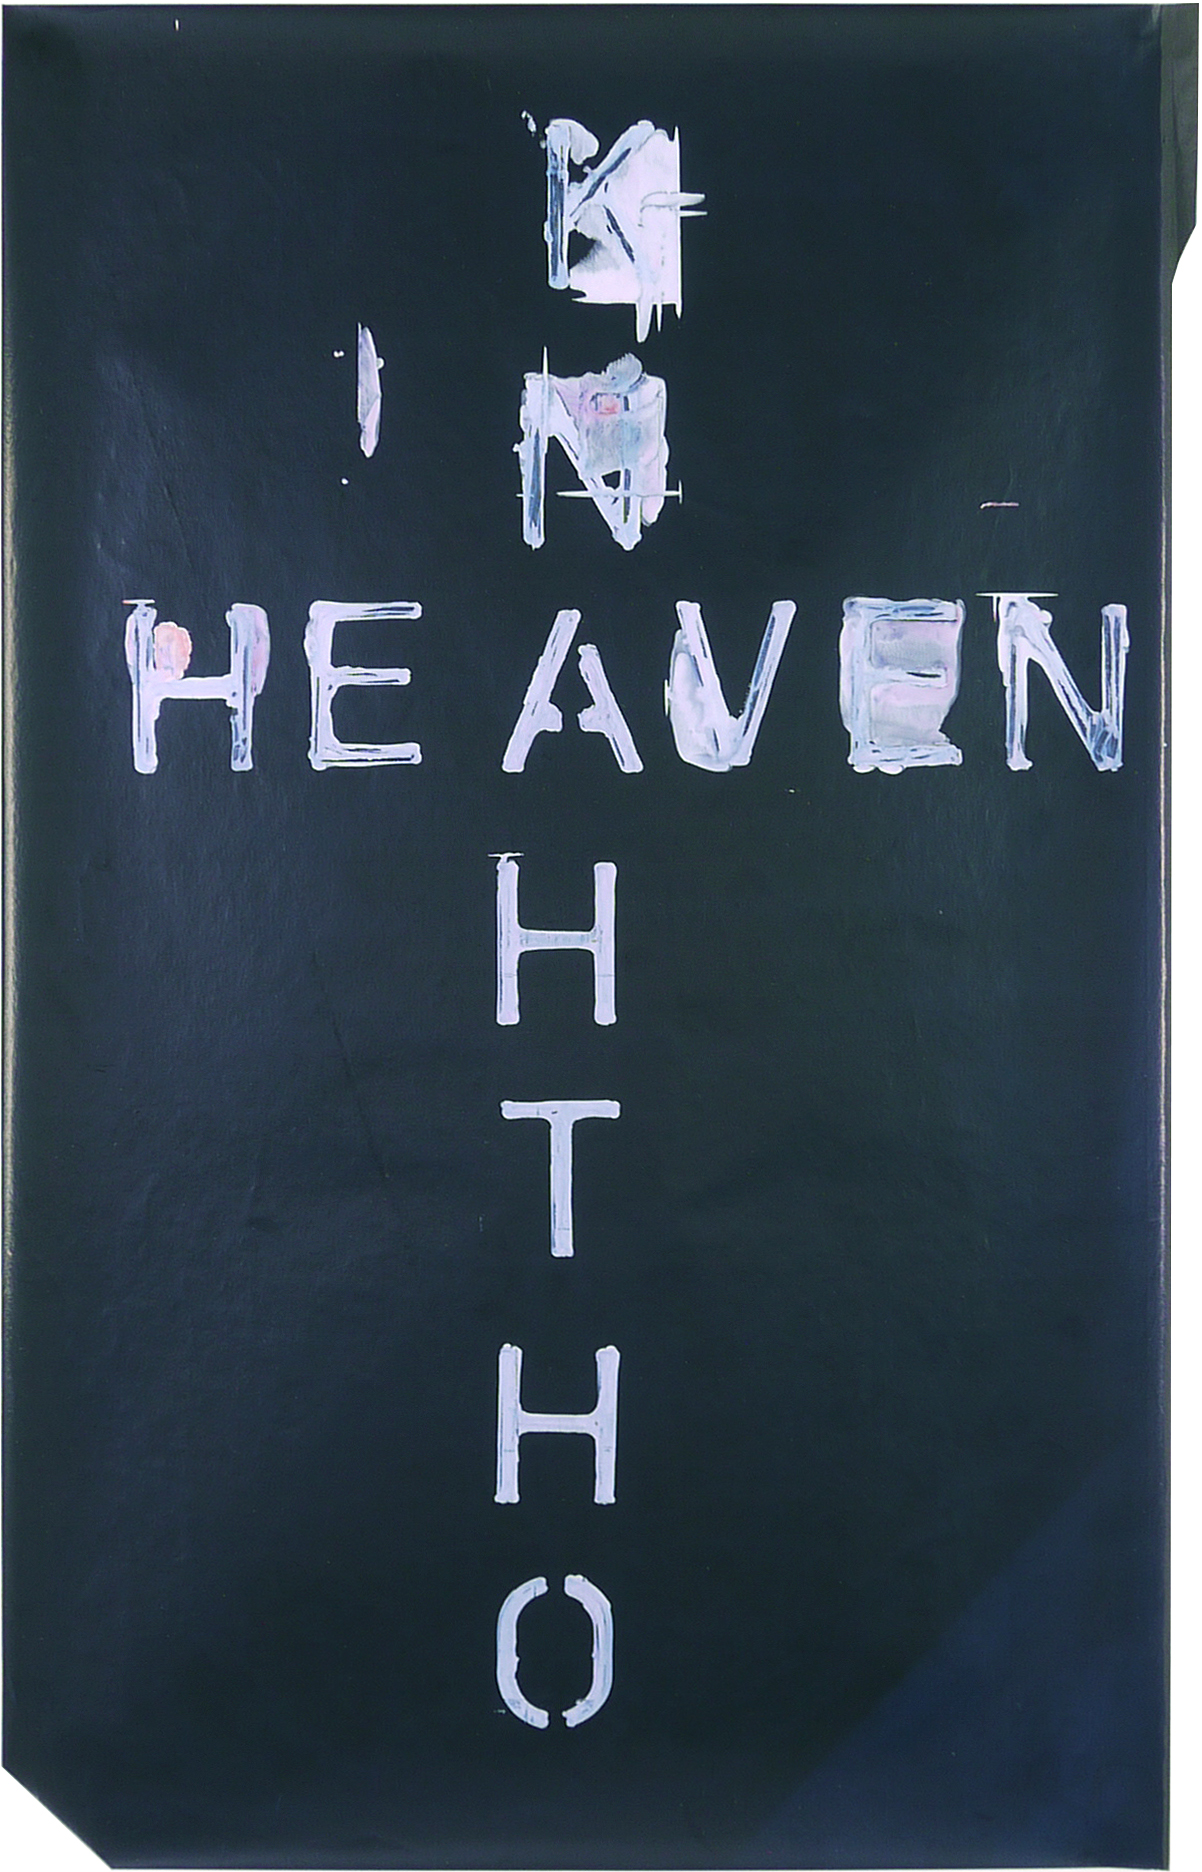 oh thank heaven  8.5 x 14 inches  jiffy on carbon paper  ed. 1